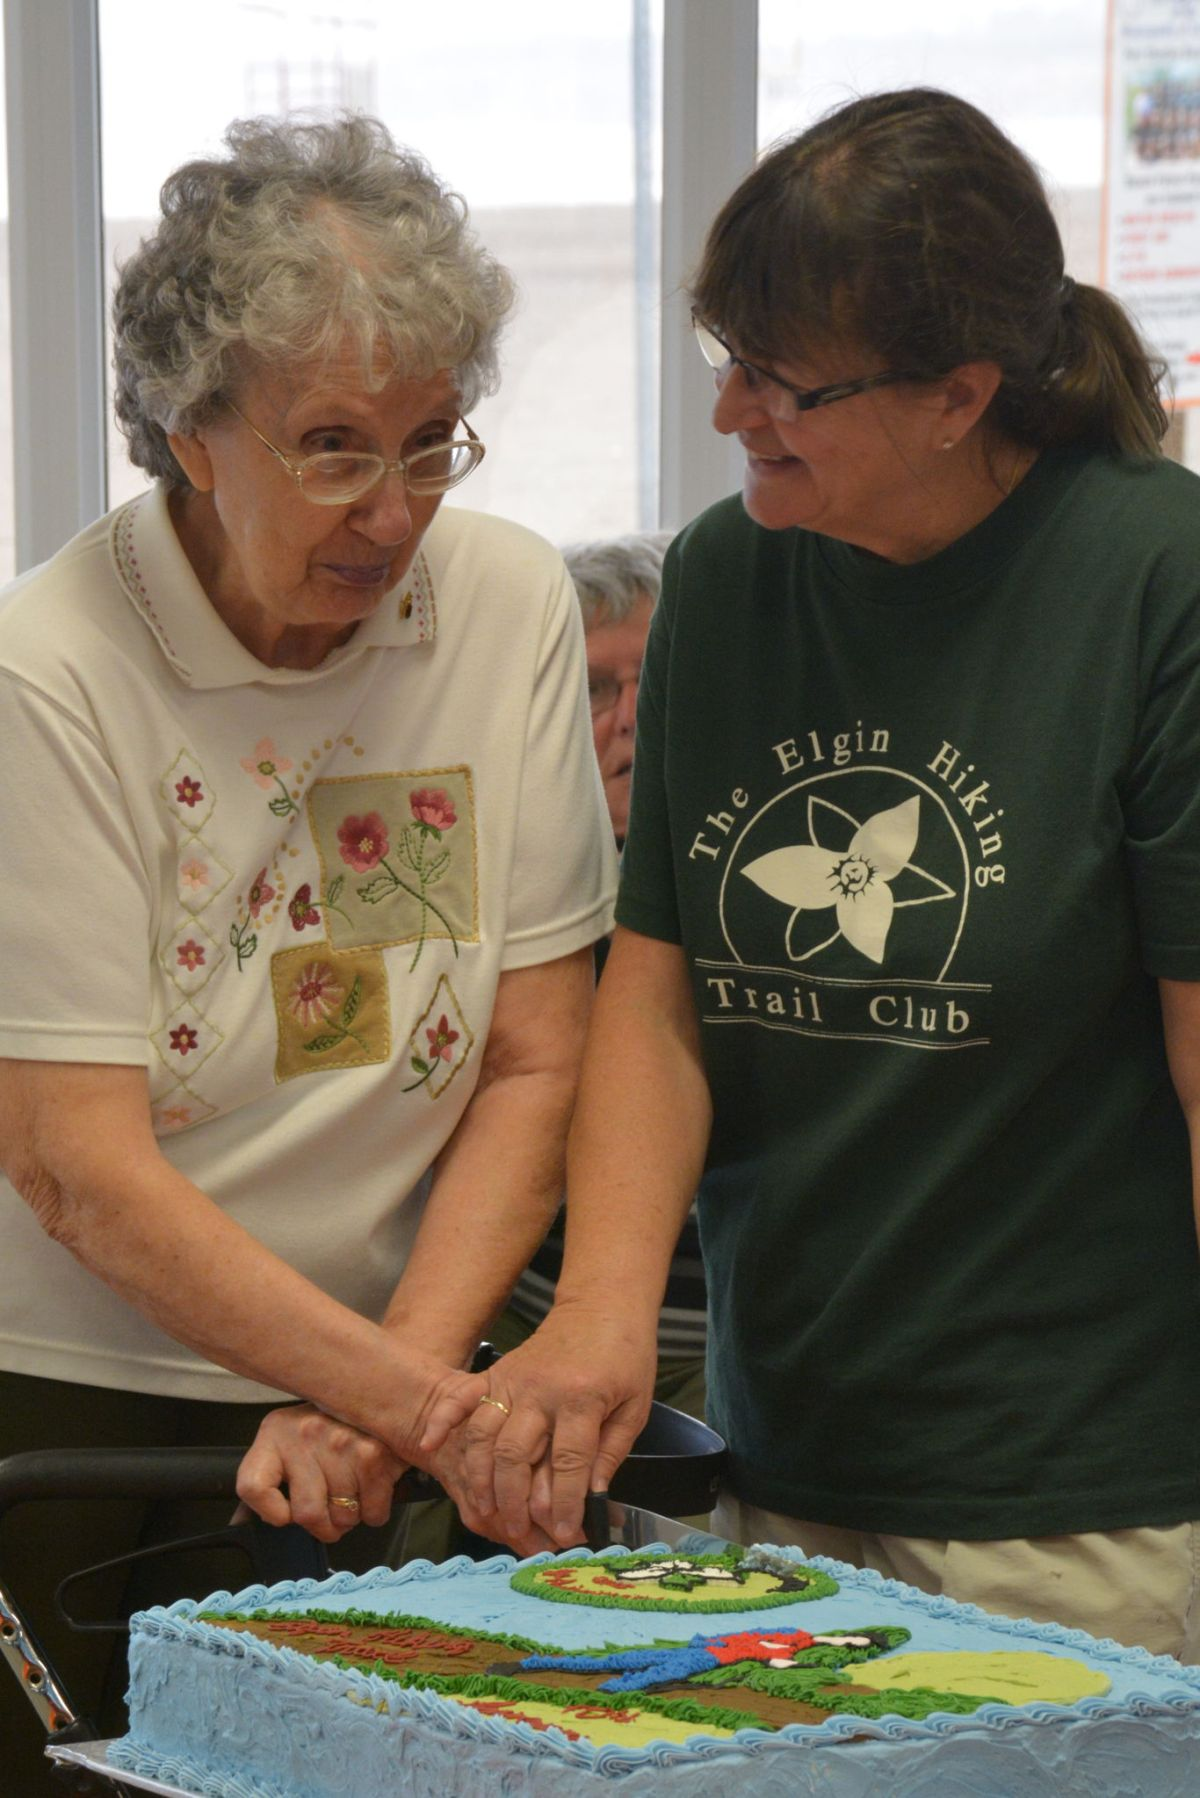 Eileene Stewart and Loretta cutting the cake which had a hiker and special 40th anniversary crest on it.